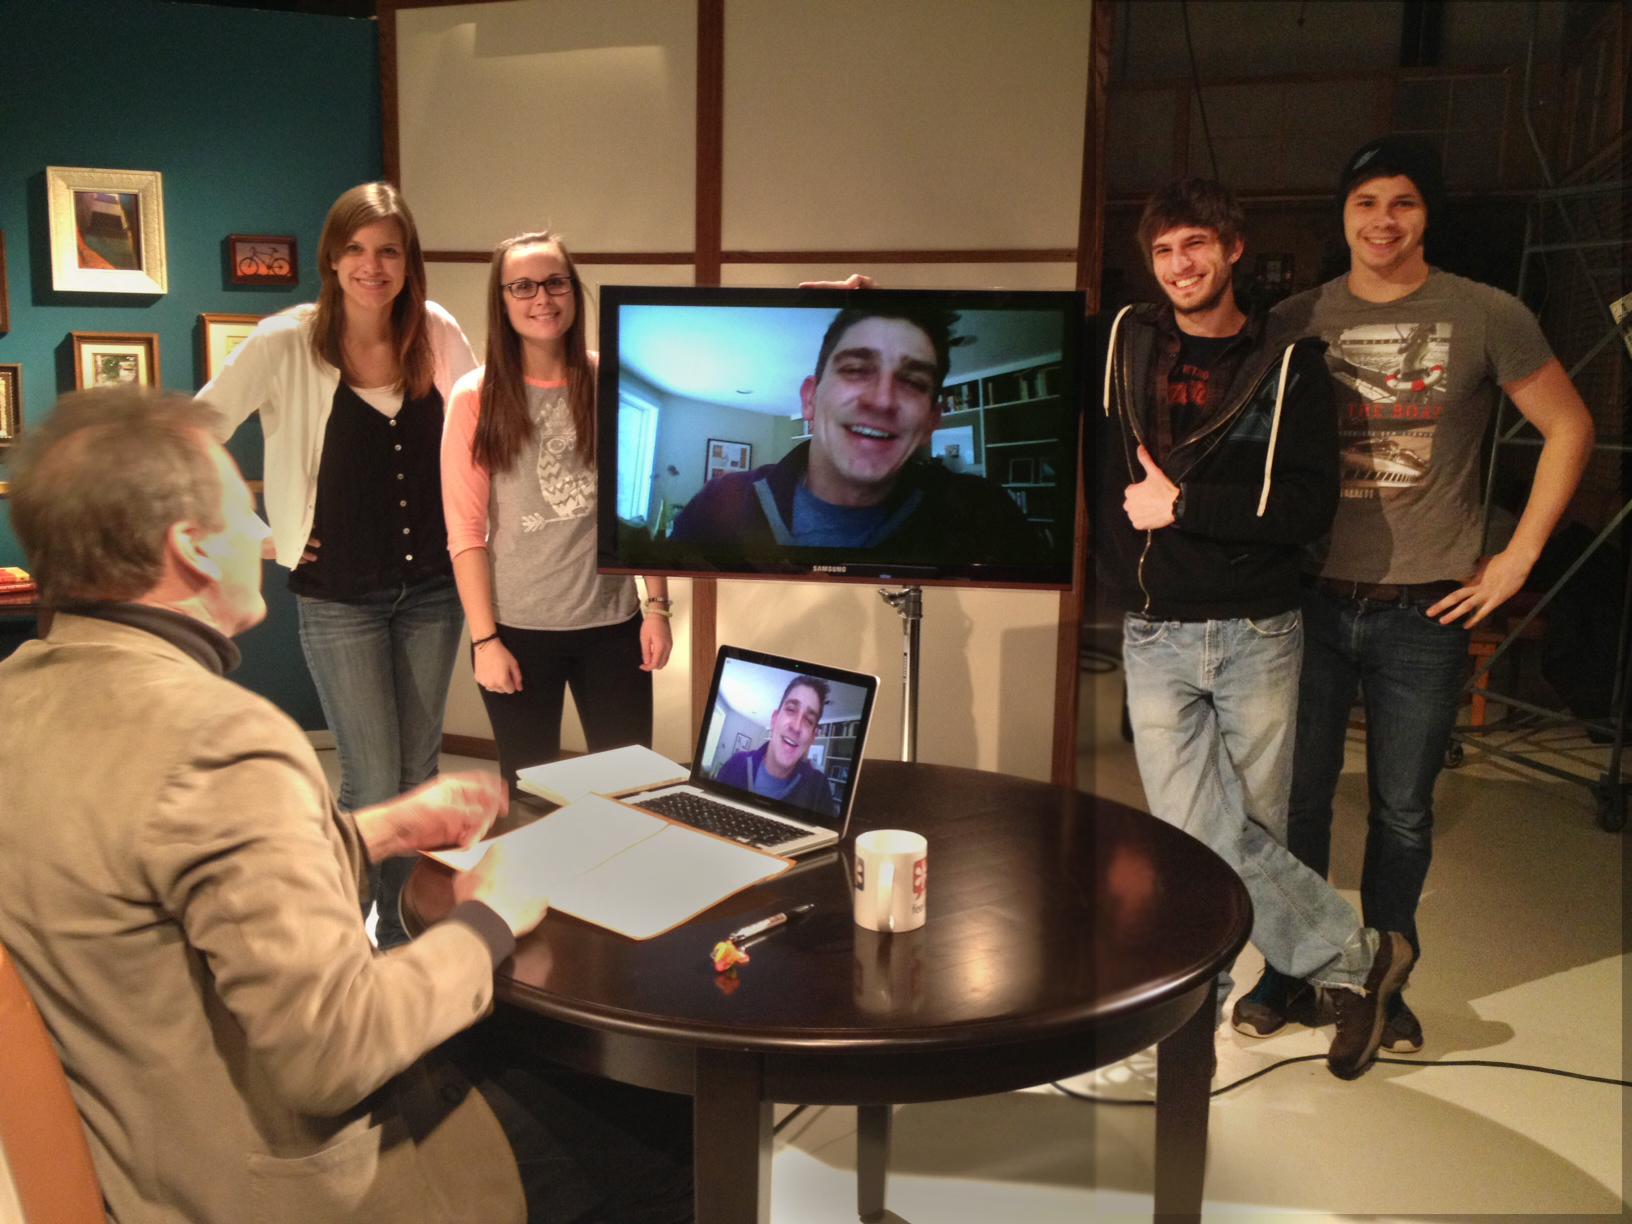 2013 Inaugural Poet Richard Blanco poses after his Skype interview with the FLYB crew (L to R): Alyssa, Ellen, Jake, and Artie.